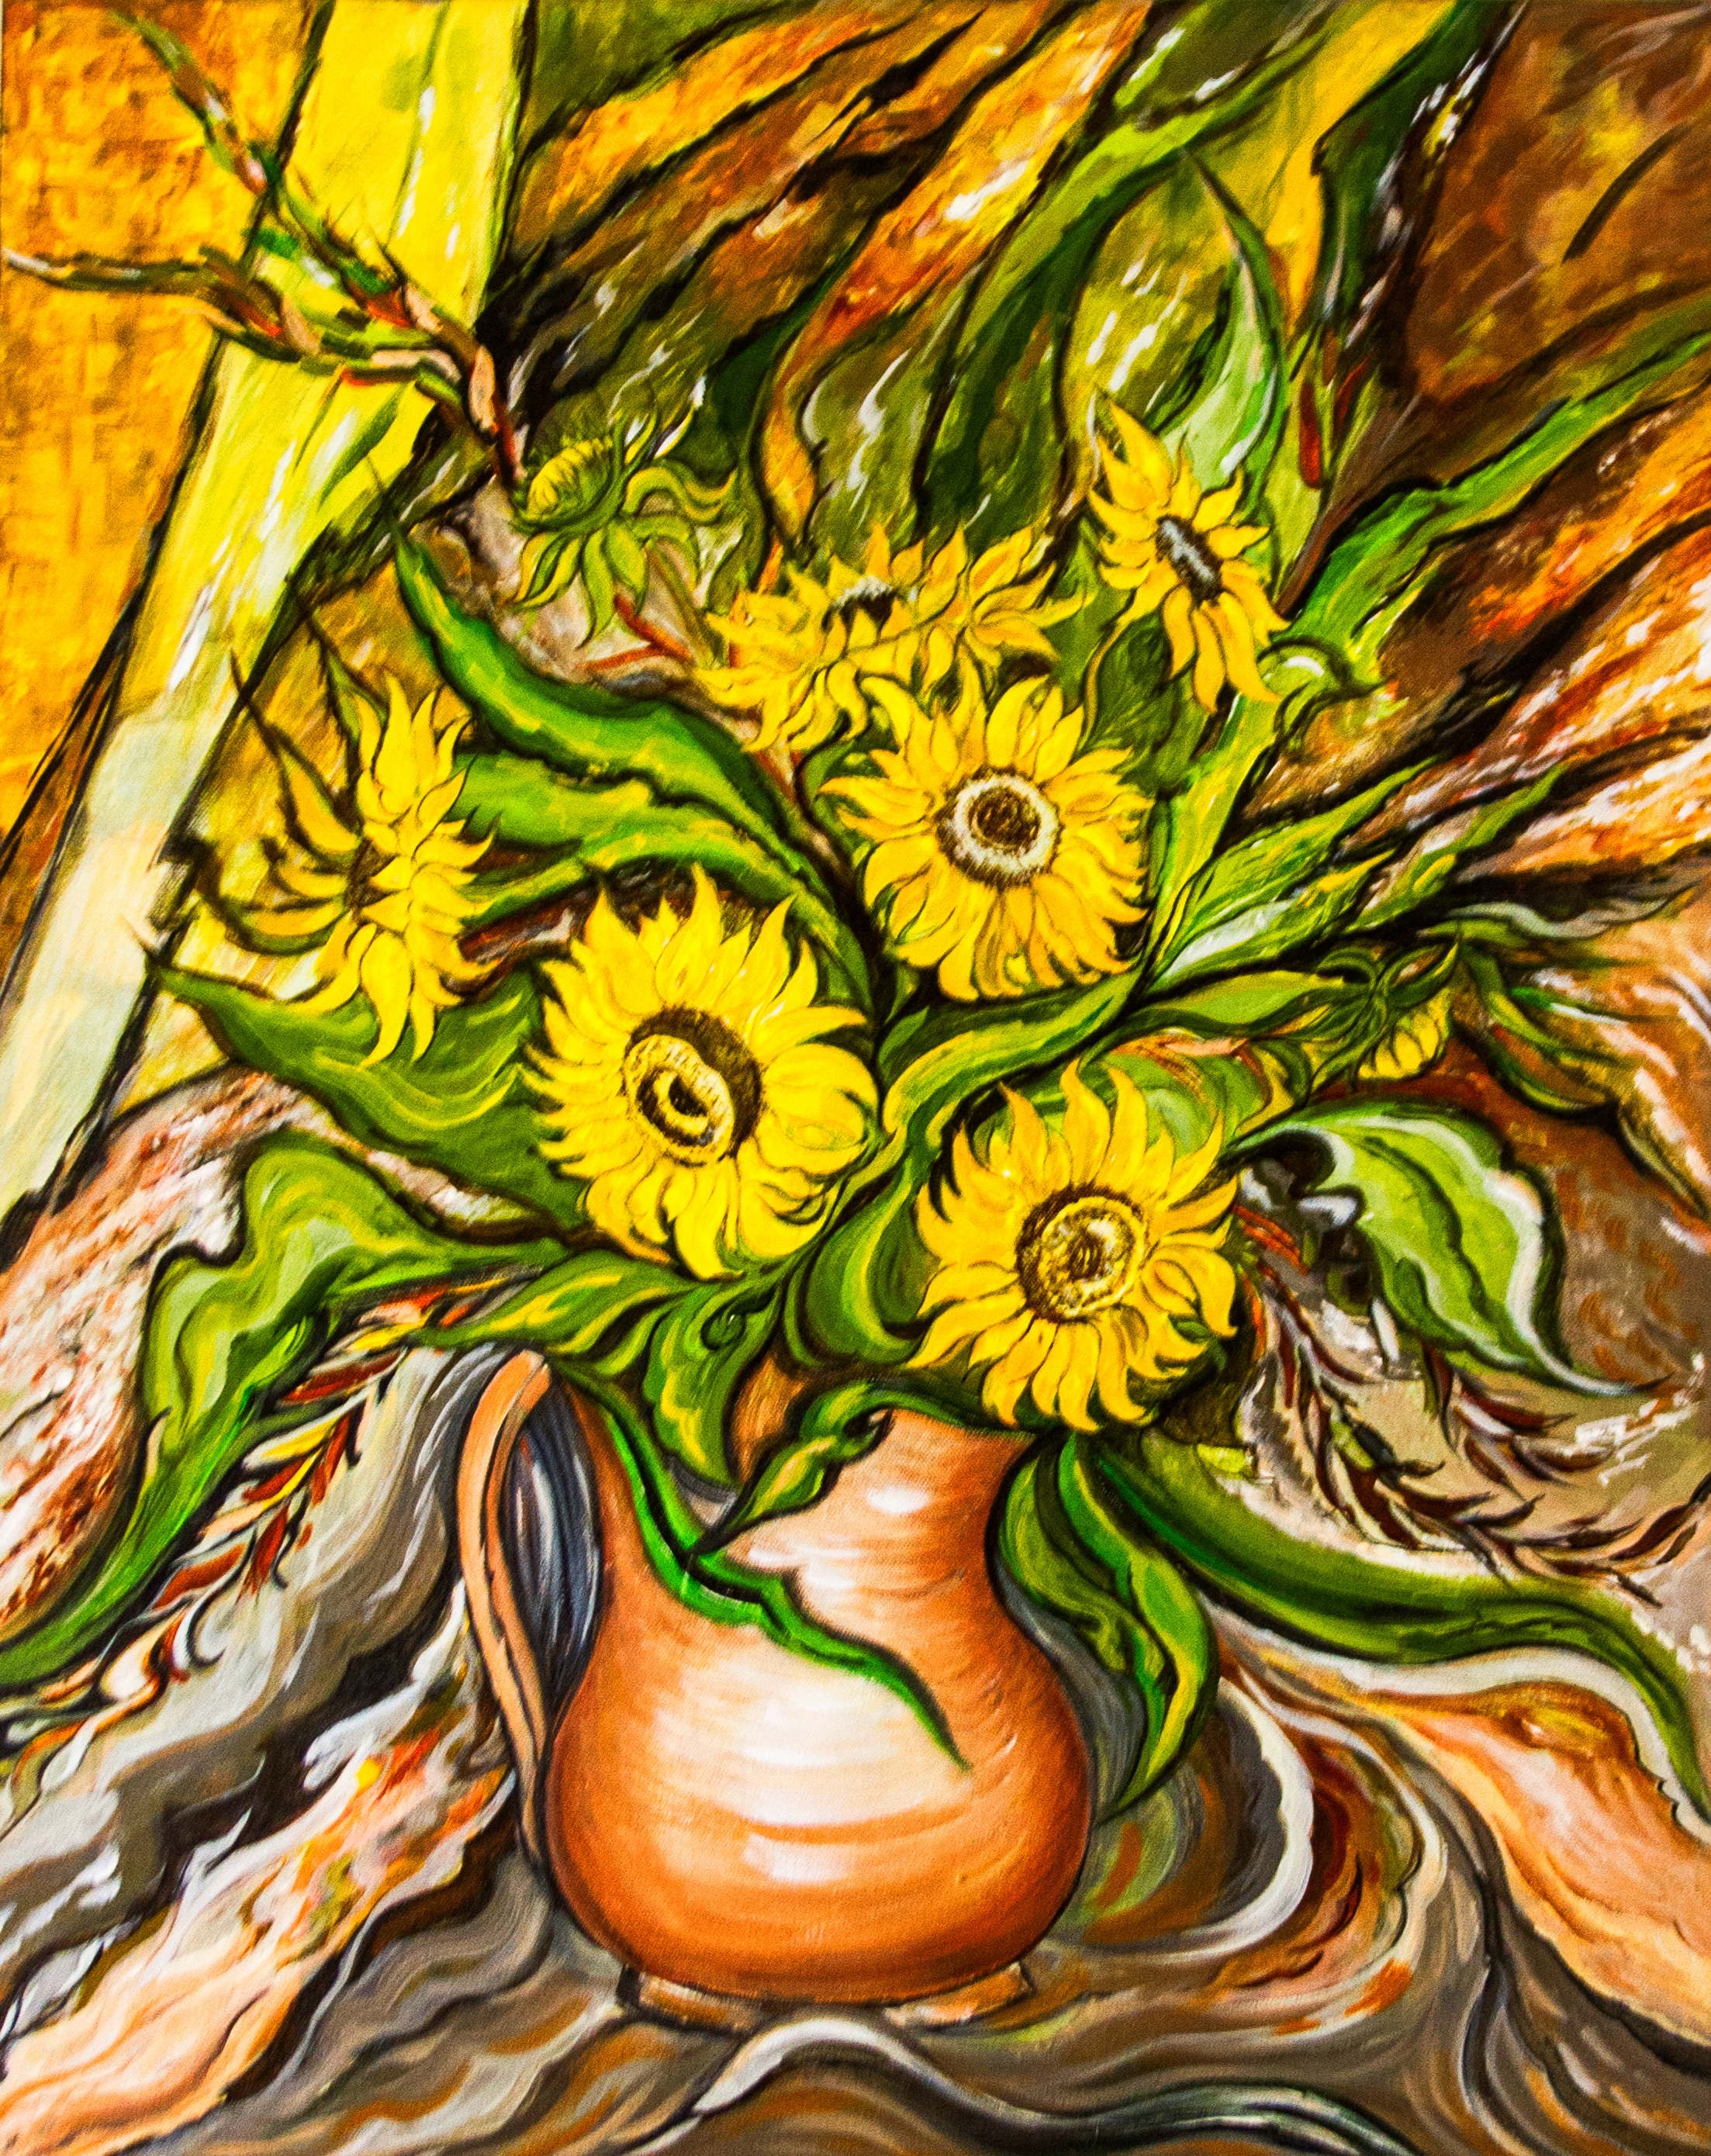 Sunflowers in a Vase 7220